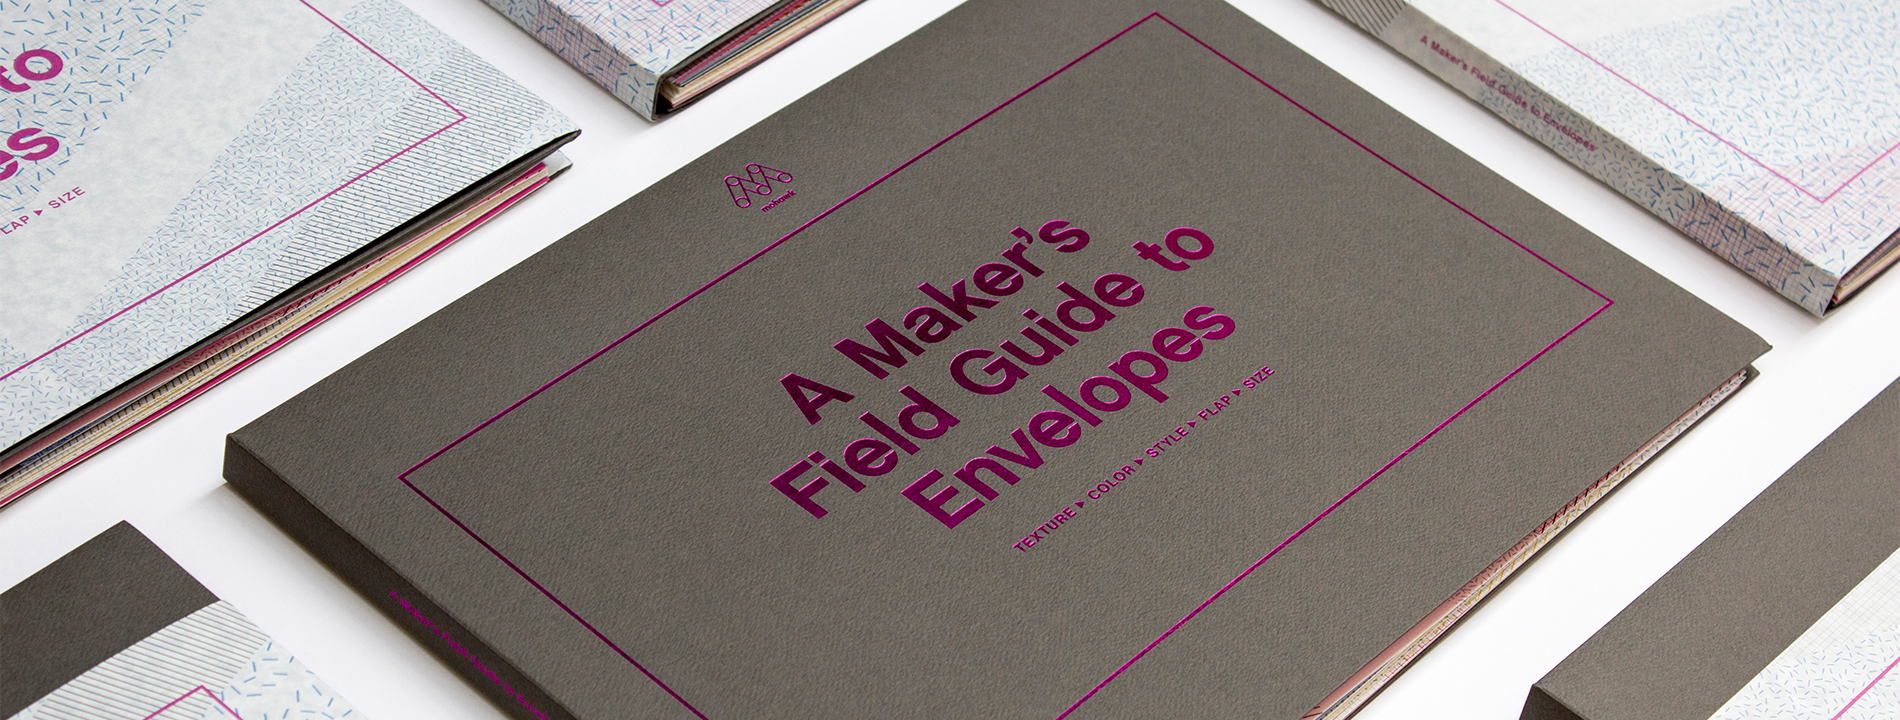 elopeFieldGuide_080817_cover.png